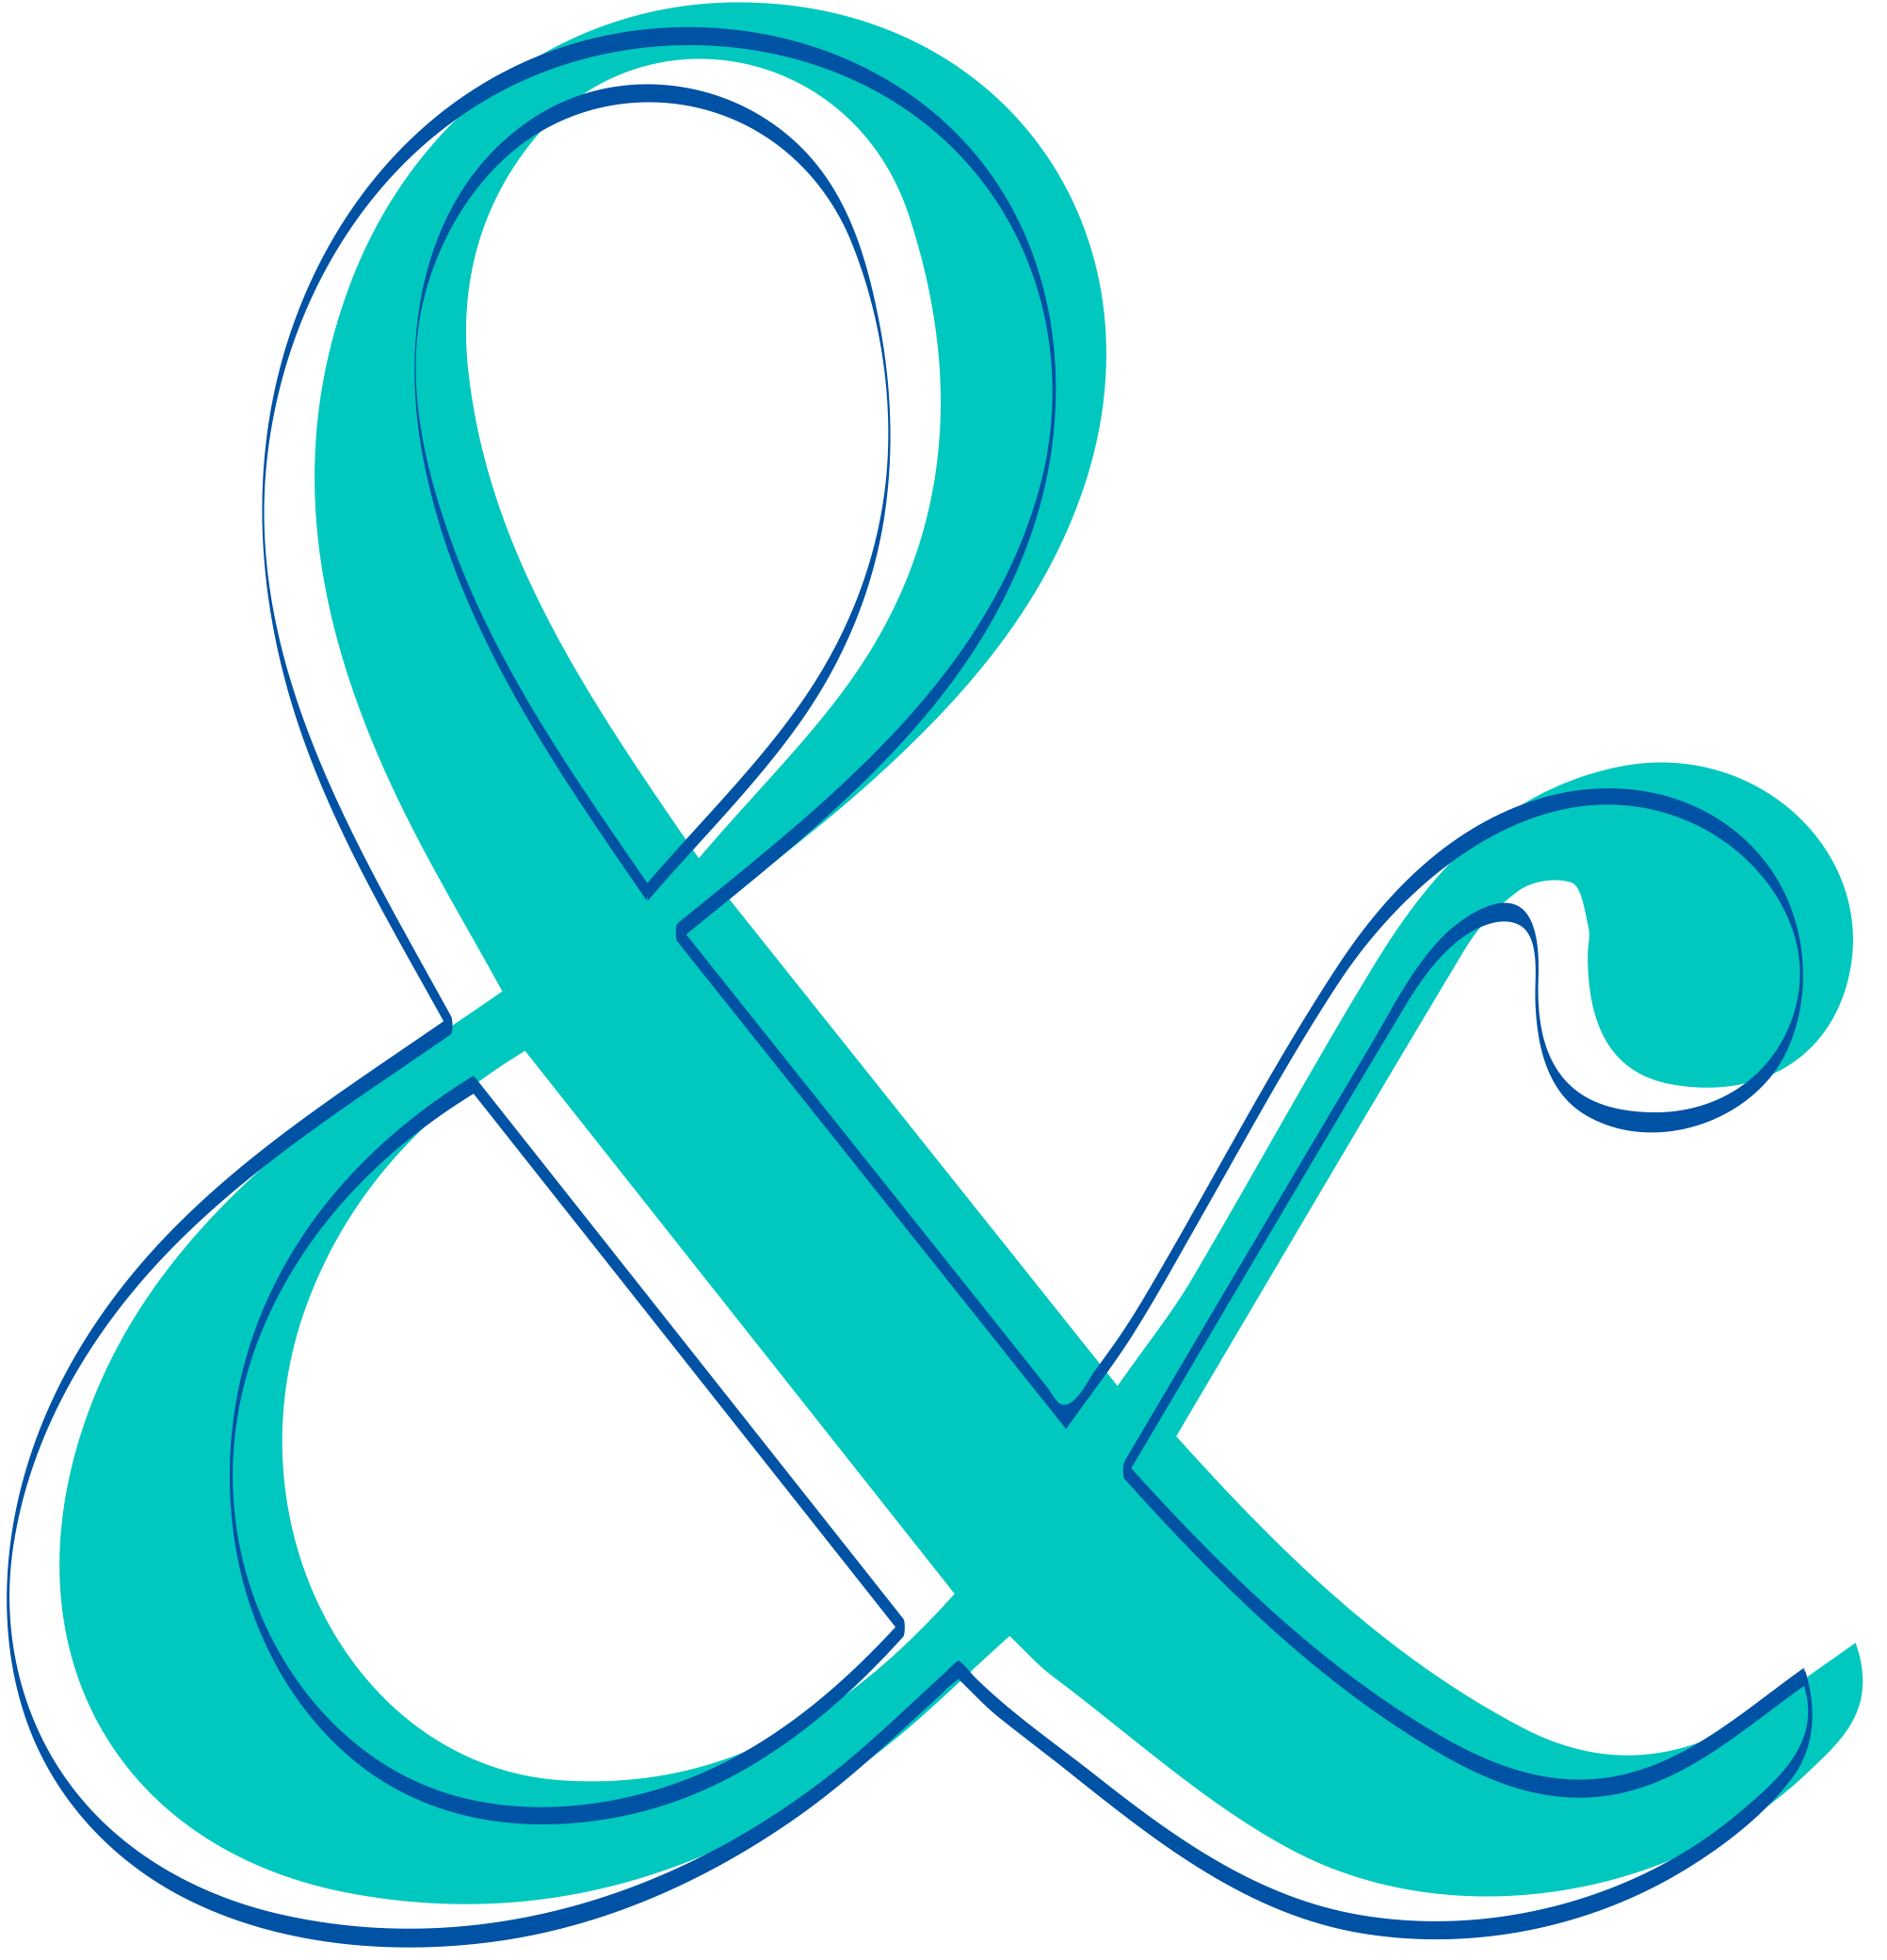 Walters & Company Ampersand Icon